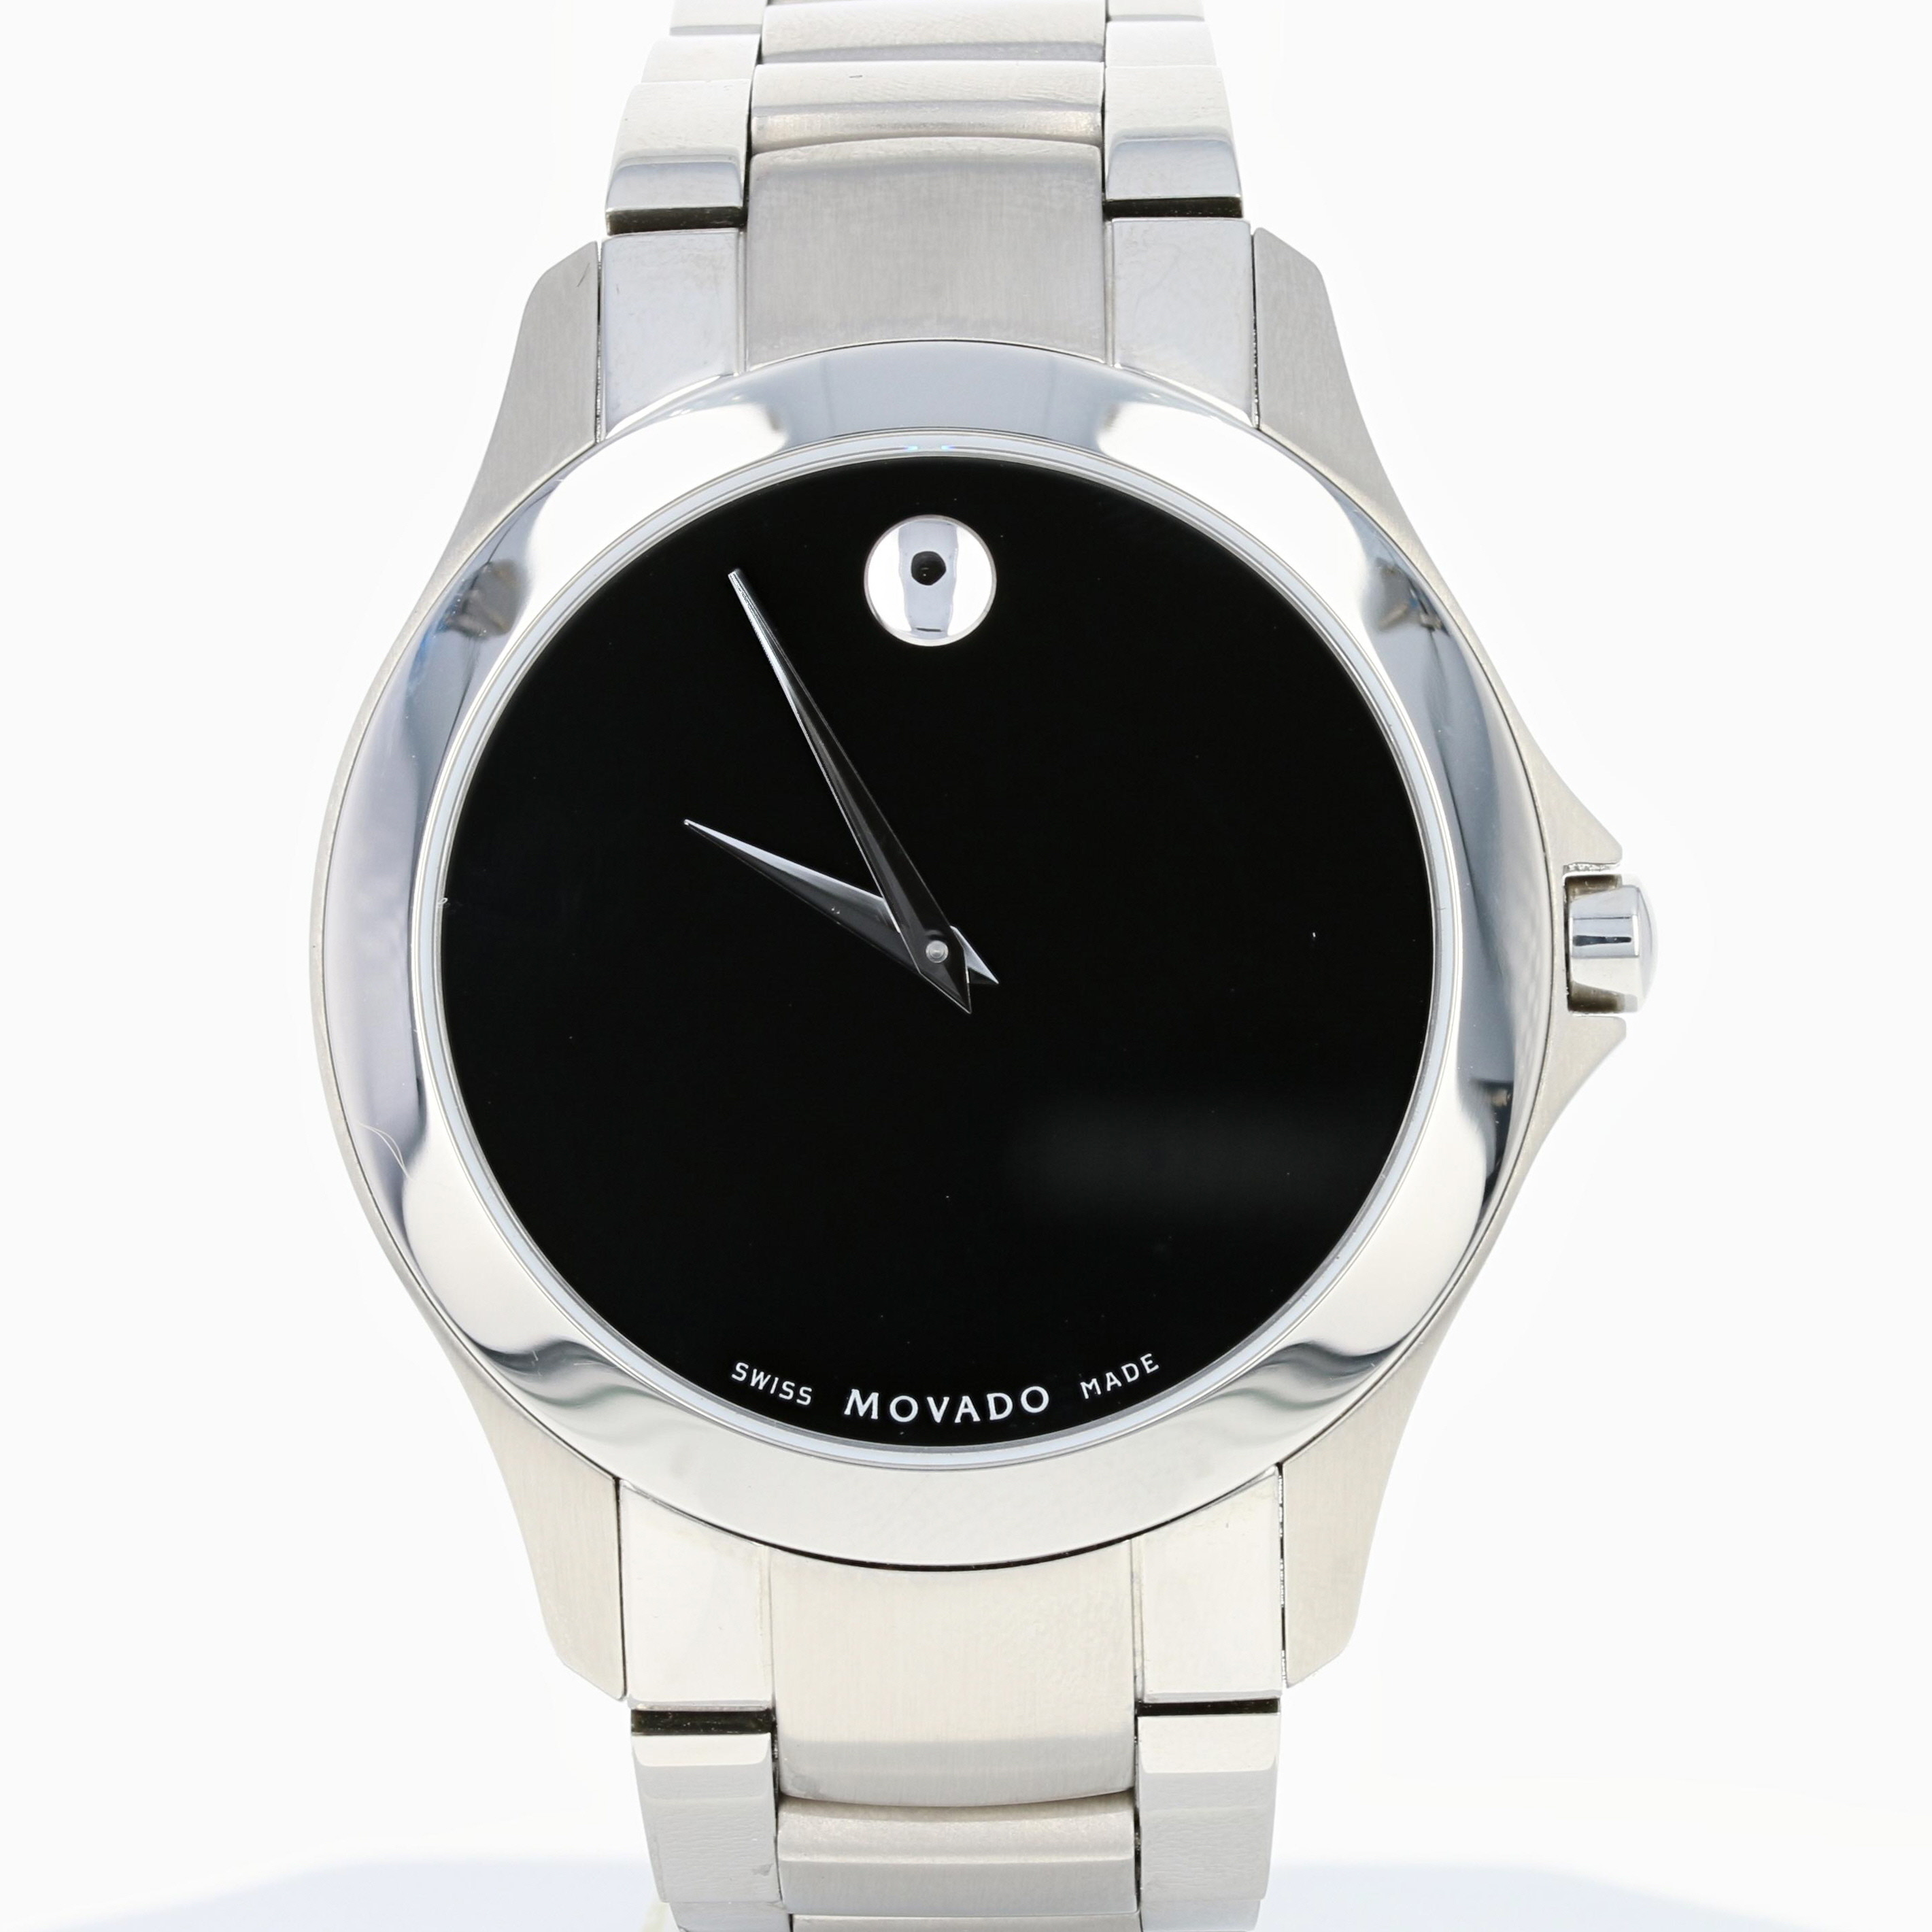 watches steel ebay movado inflow watch global stainless esq res s p inflowcomponent beacon technicalissues by mens content